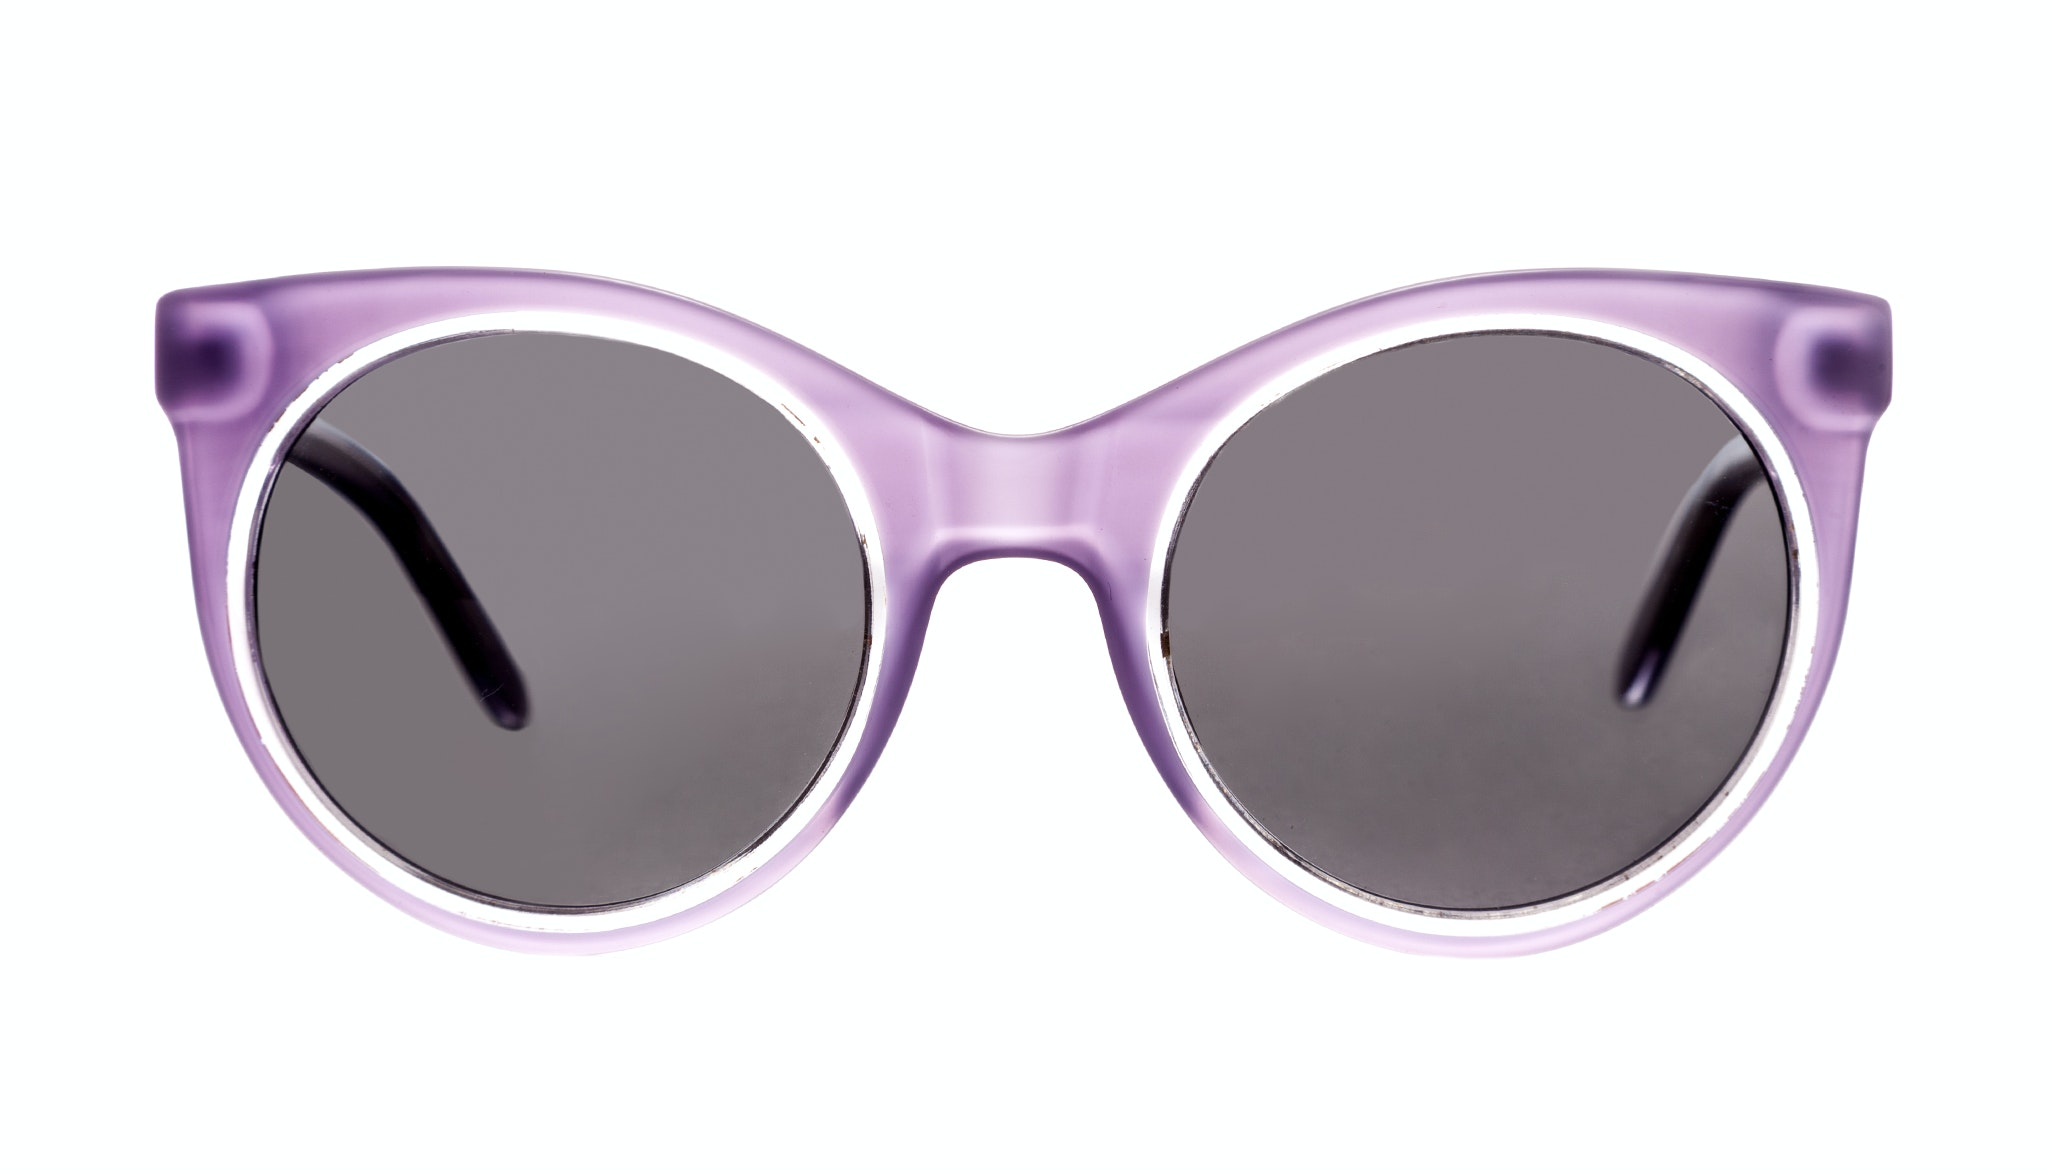 Affordable Fashion Glasses Cat Eye Round Sunglasses Women Pop Lilac Ice